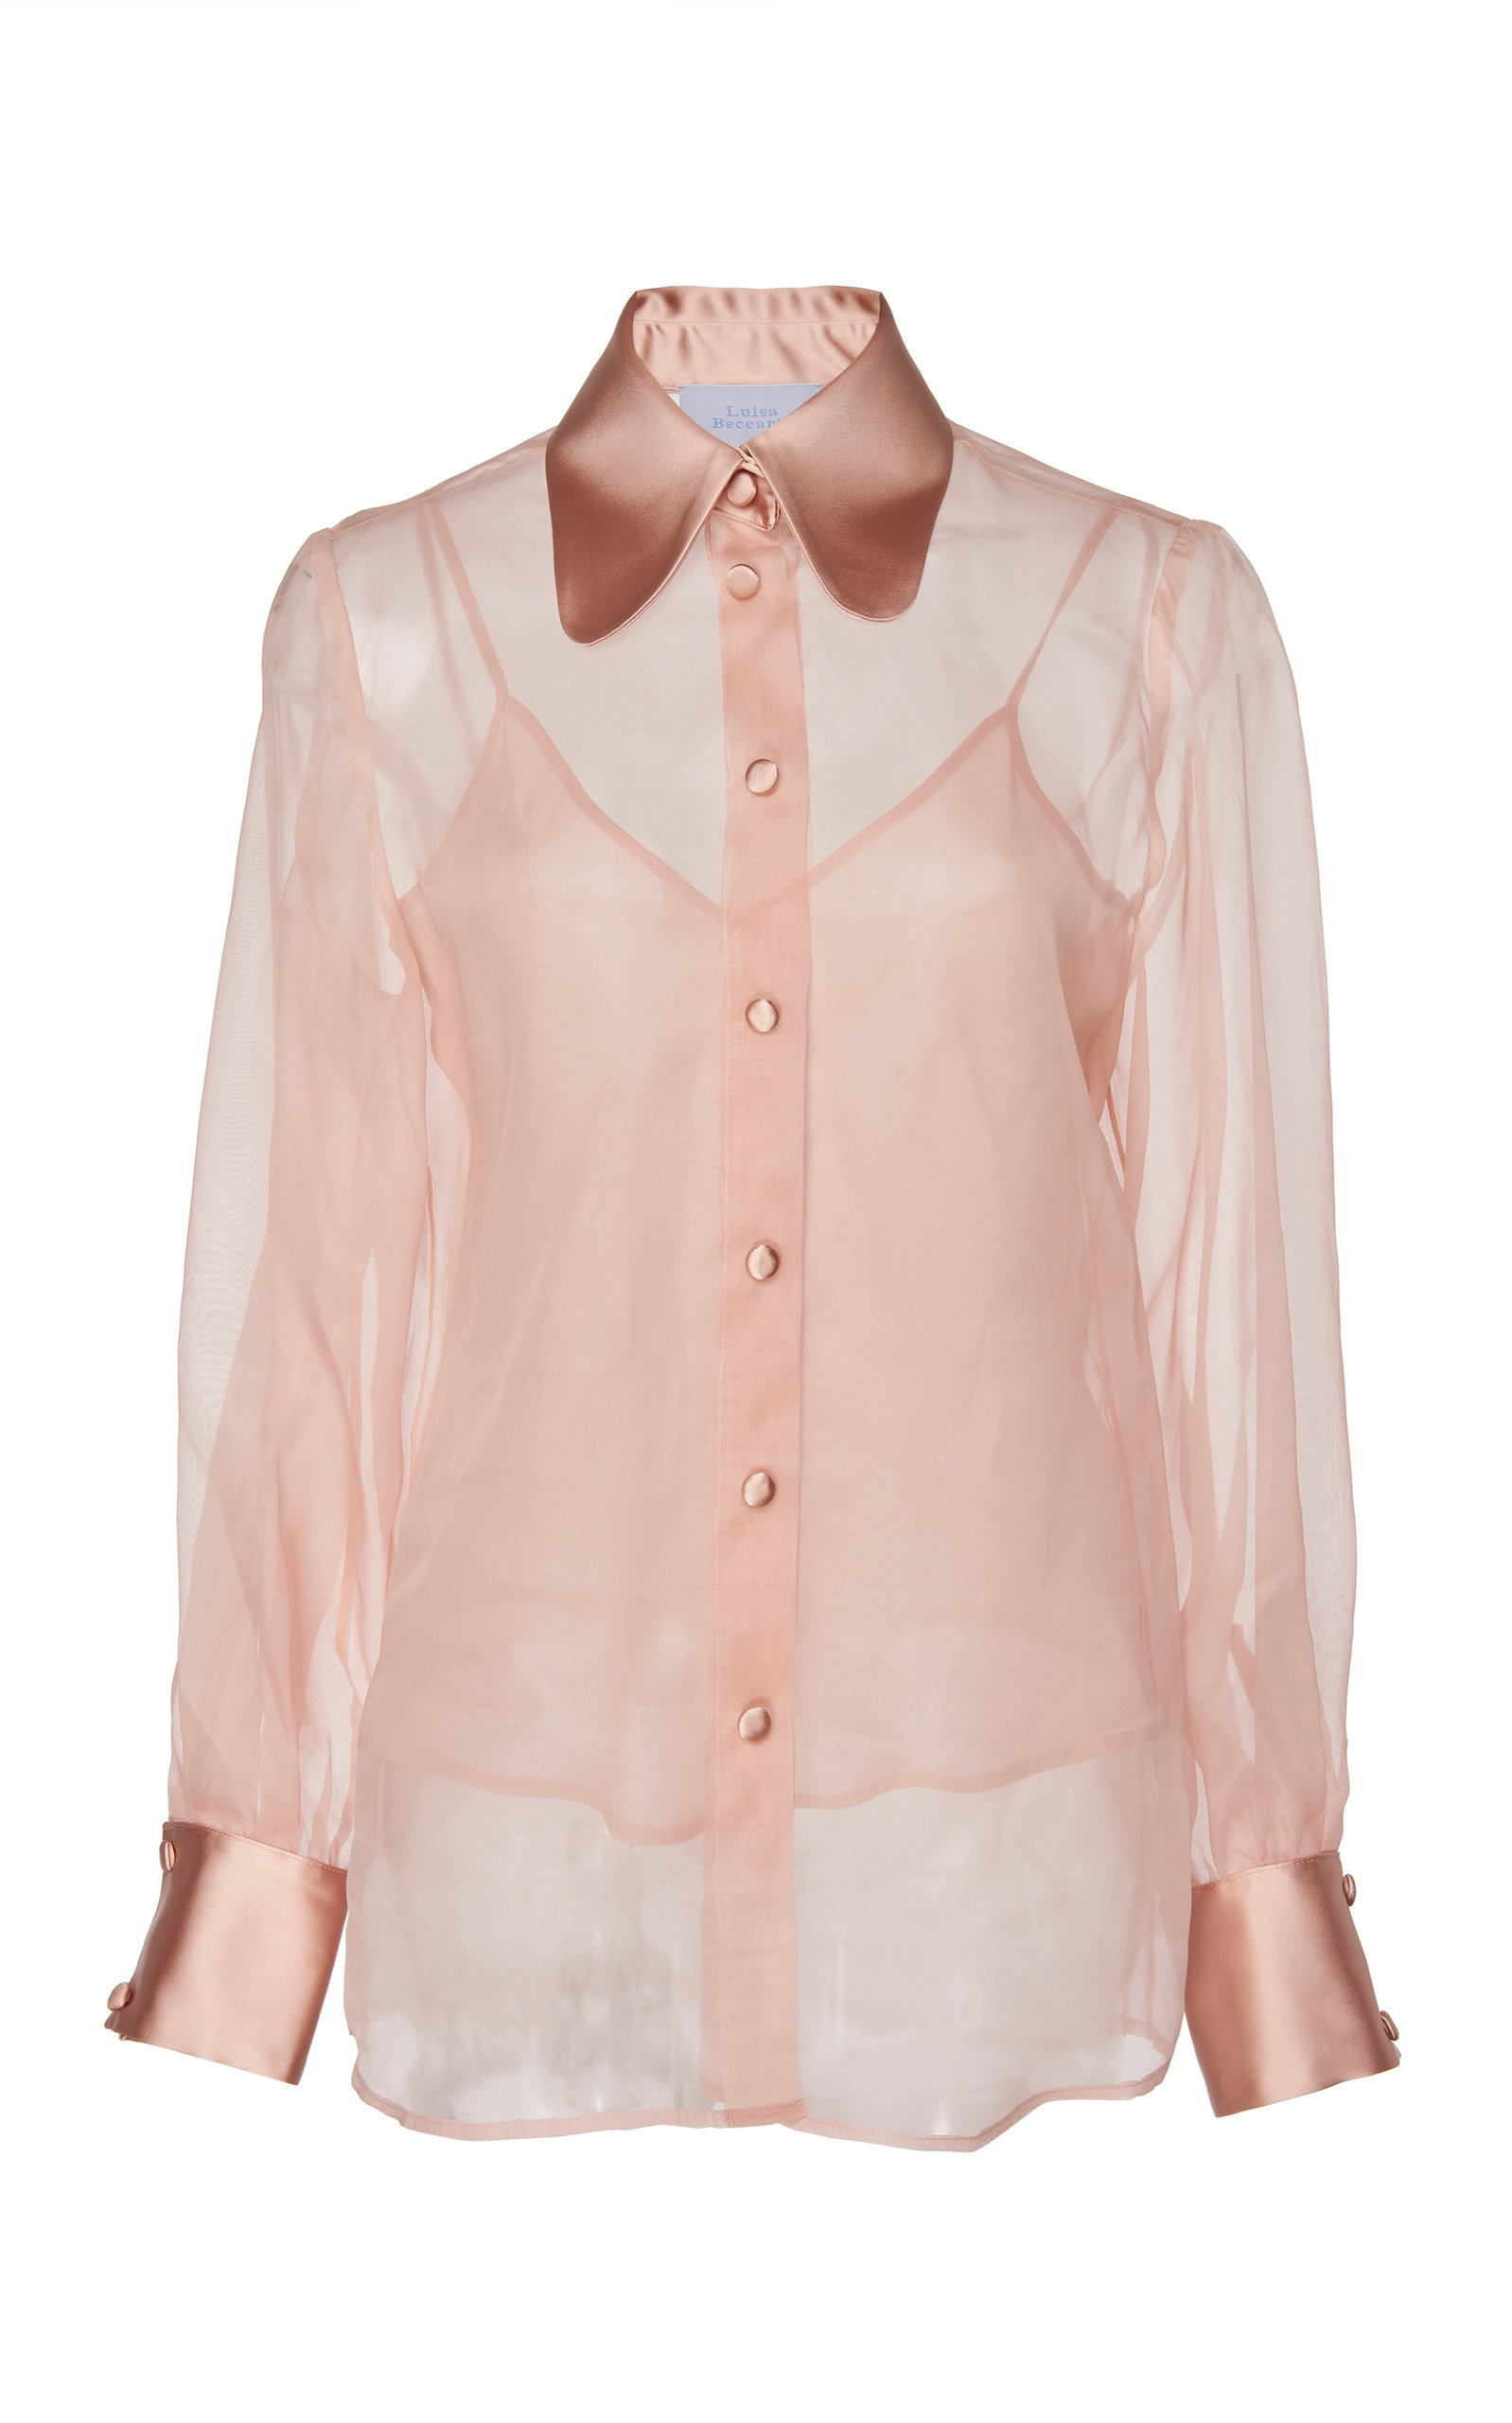 ae5d5df5c44ec2 Luisa BeccariaSilk Chiffon Blouse With Satin Collar. CLOSE. Loading